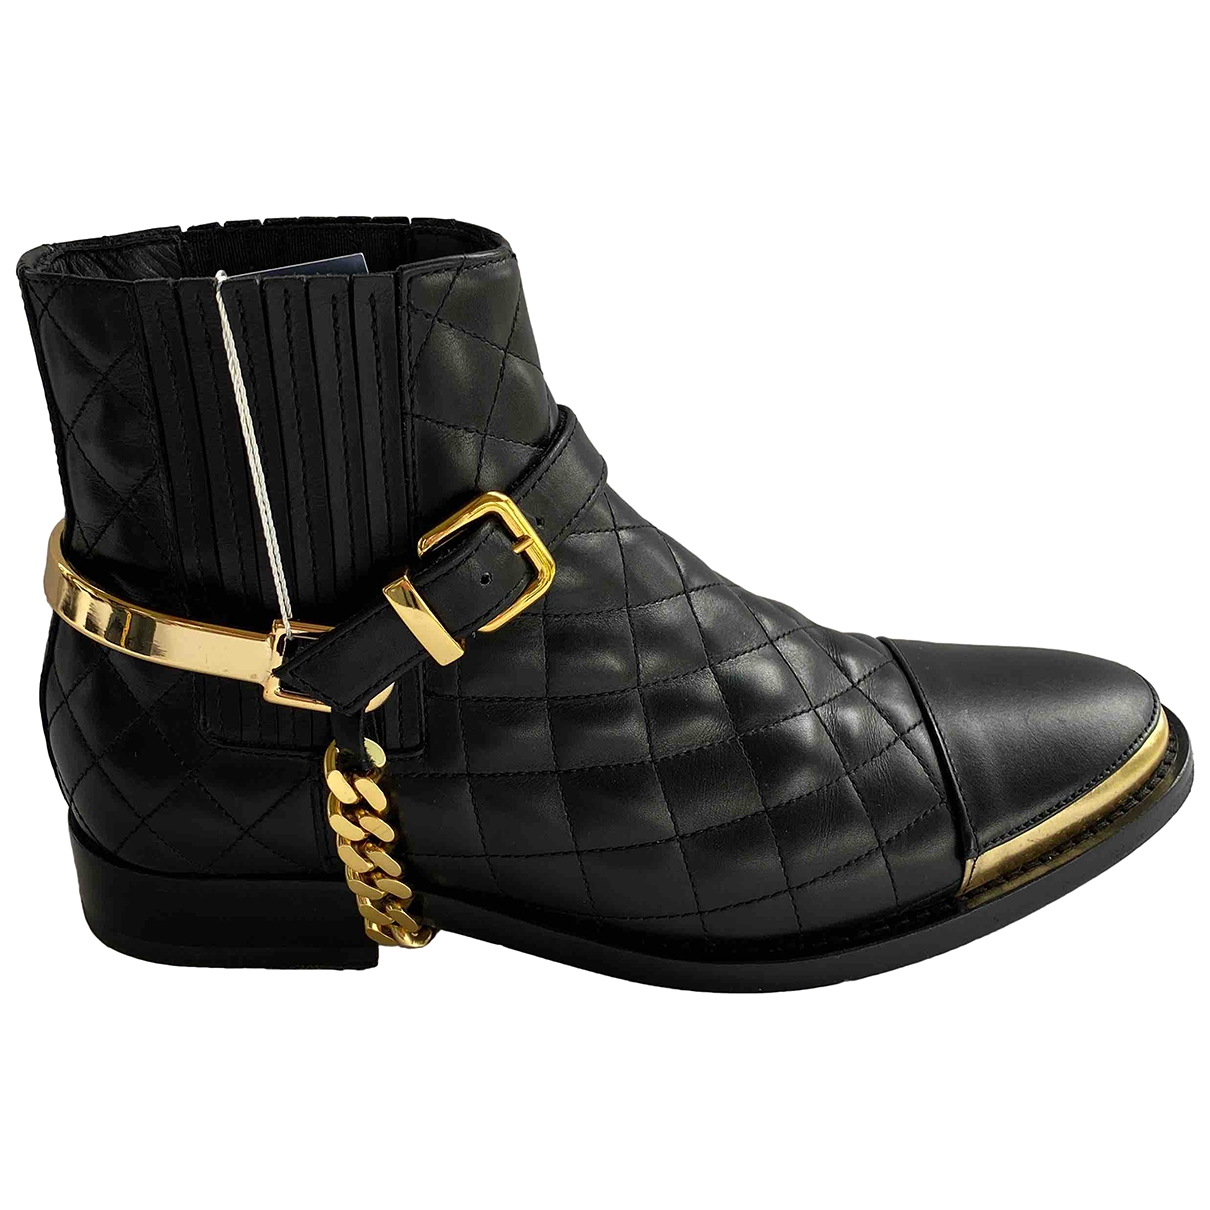 Balmain \N Black Leather Ankle boots for Women 36 IT